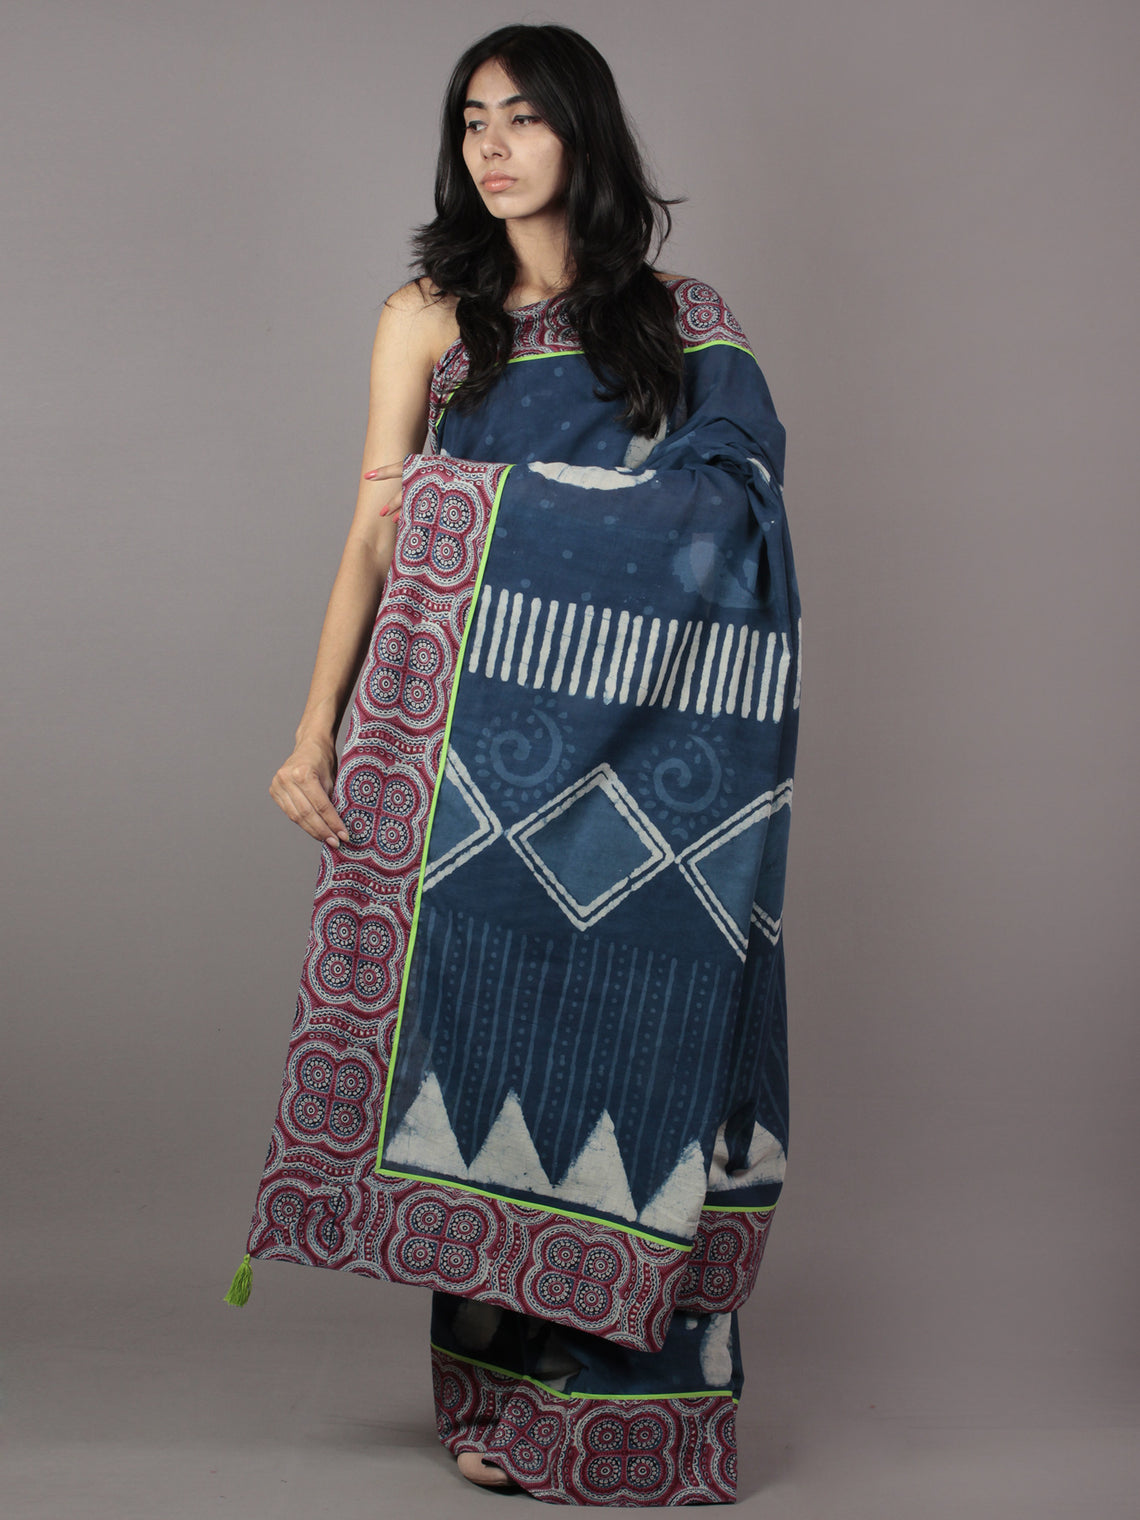 Indigo Ivory Hand Block Printed Cotton Saree With Maroon Ajrakh Printed Border & Tassels - S031701873